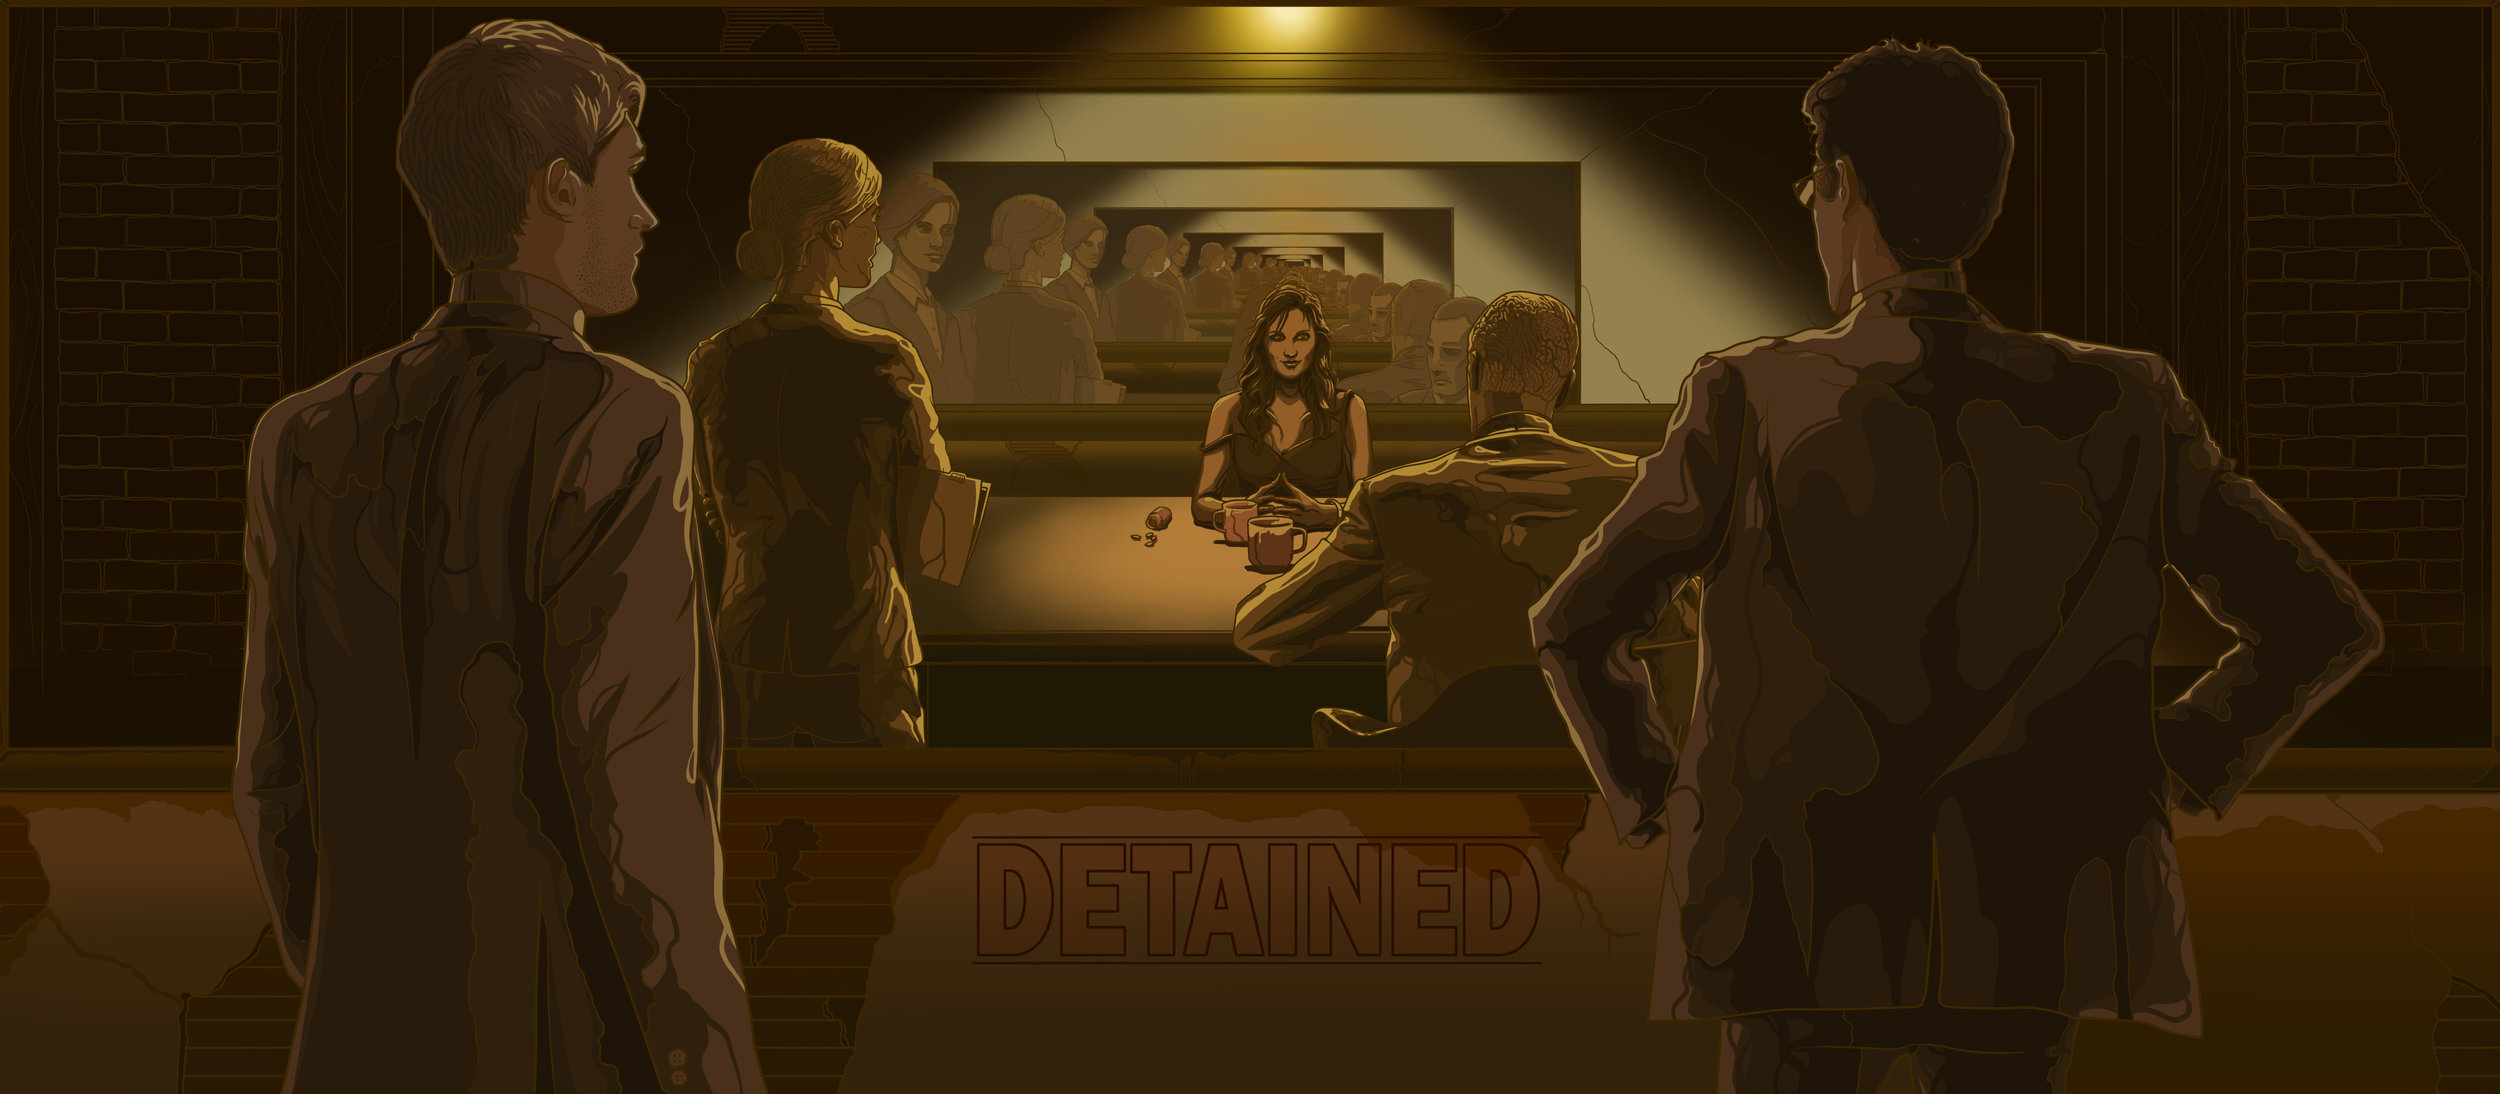 """(Titled) Key Pitch Concept piece for the feature film """" Detained"""",  Written by Jeremy Palmer and produced by Ryan Scaringe. Coming soon from Kinogo Pictures.   Original artwork by  Jonathan B Perez ©"""